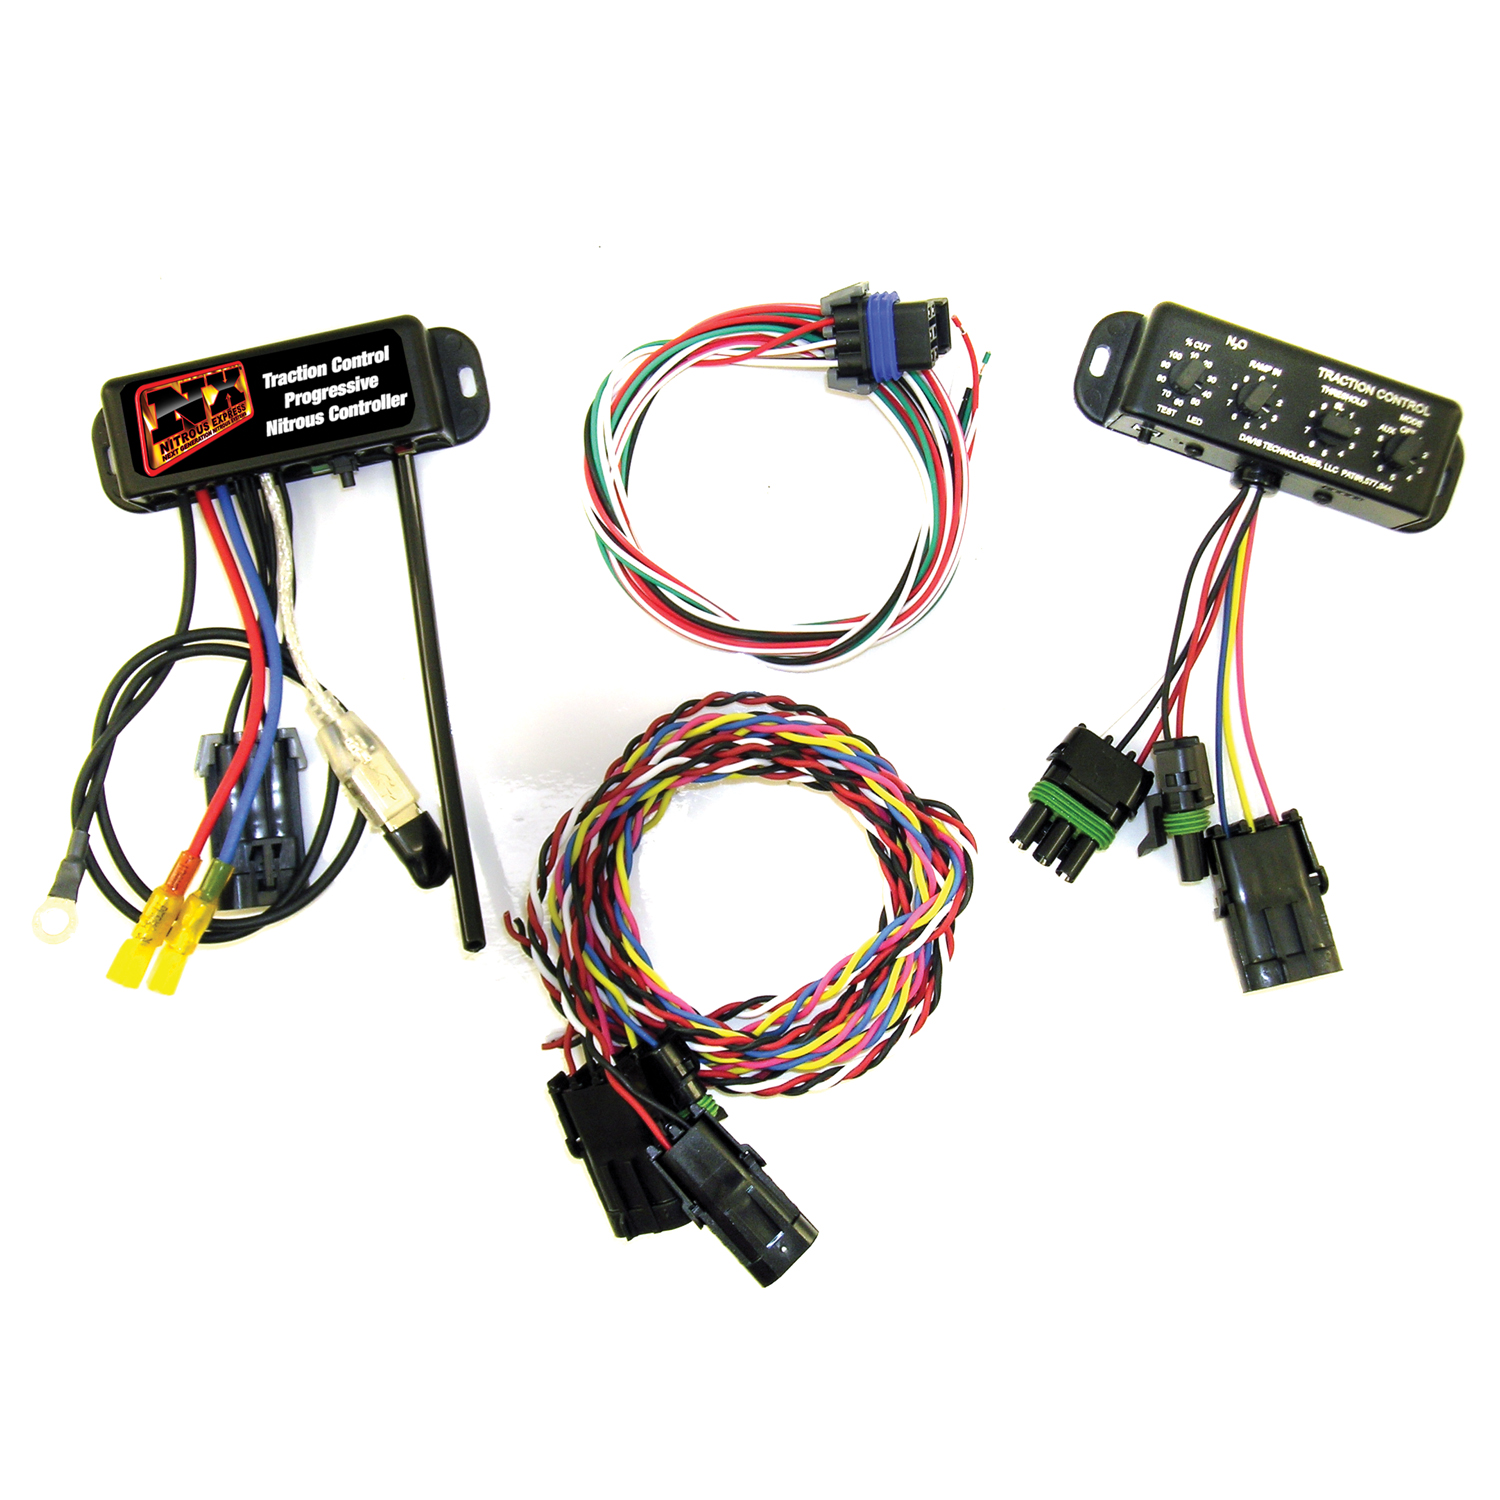 camaro 2010, pro traction control module for maximizer 3, nitrous express